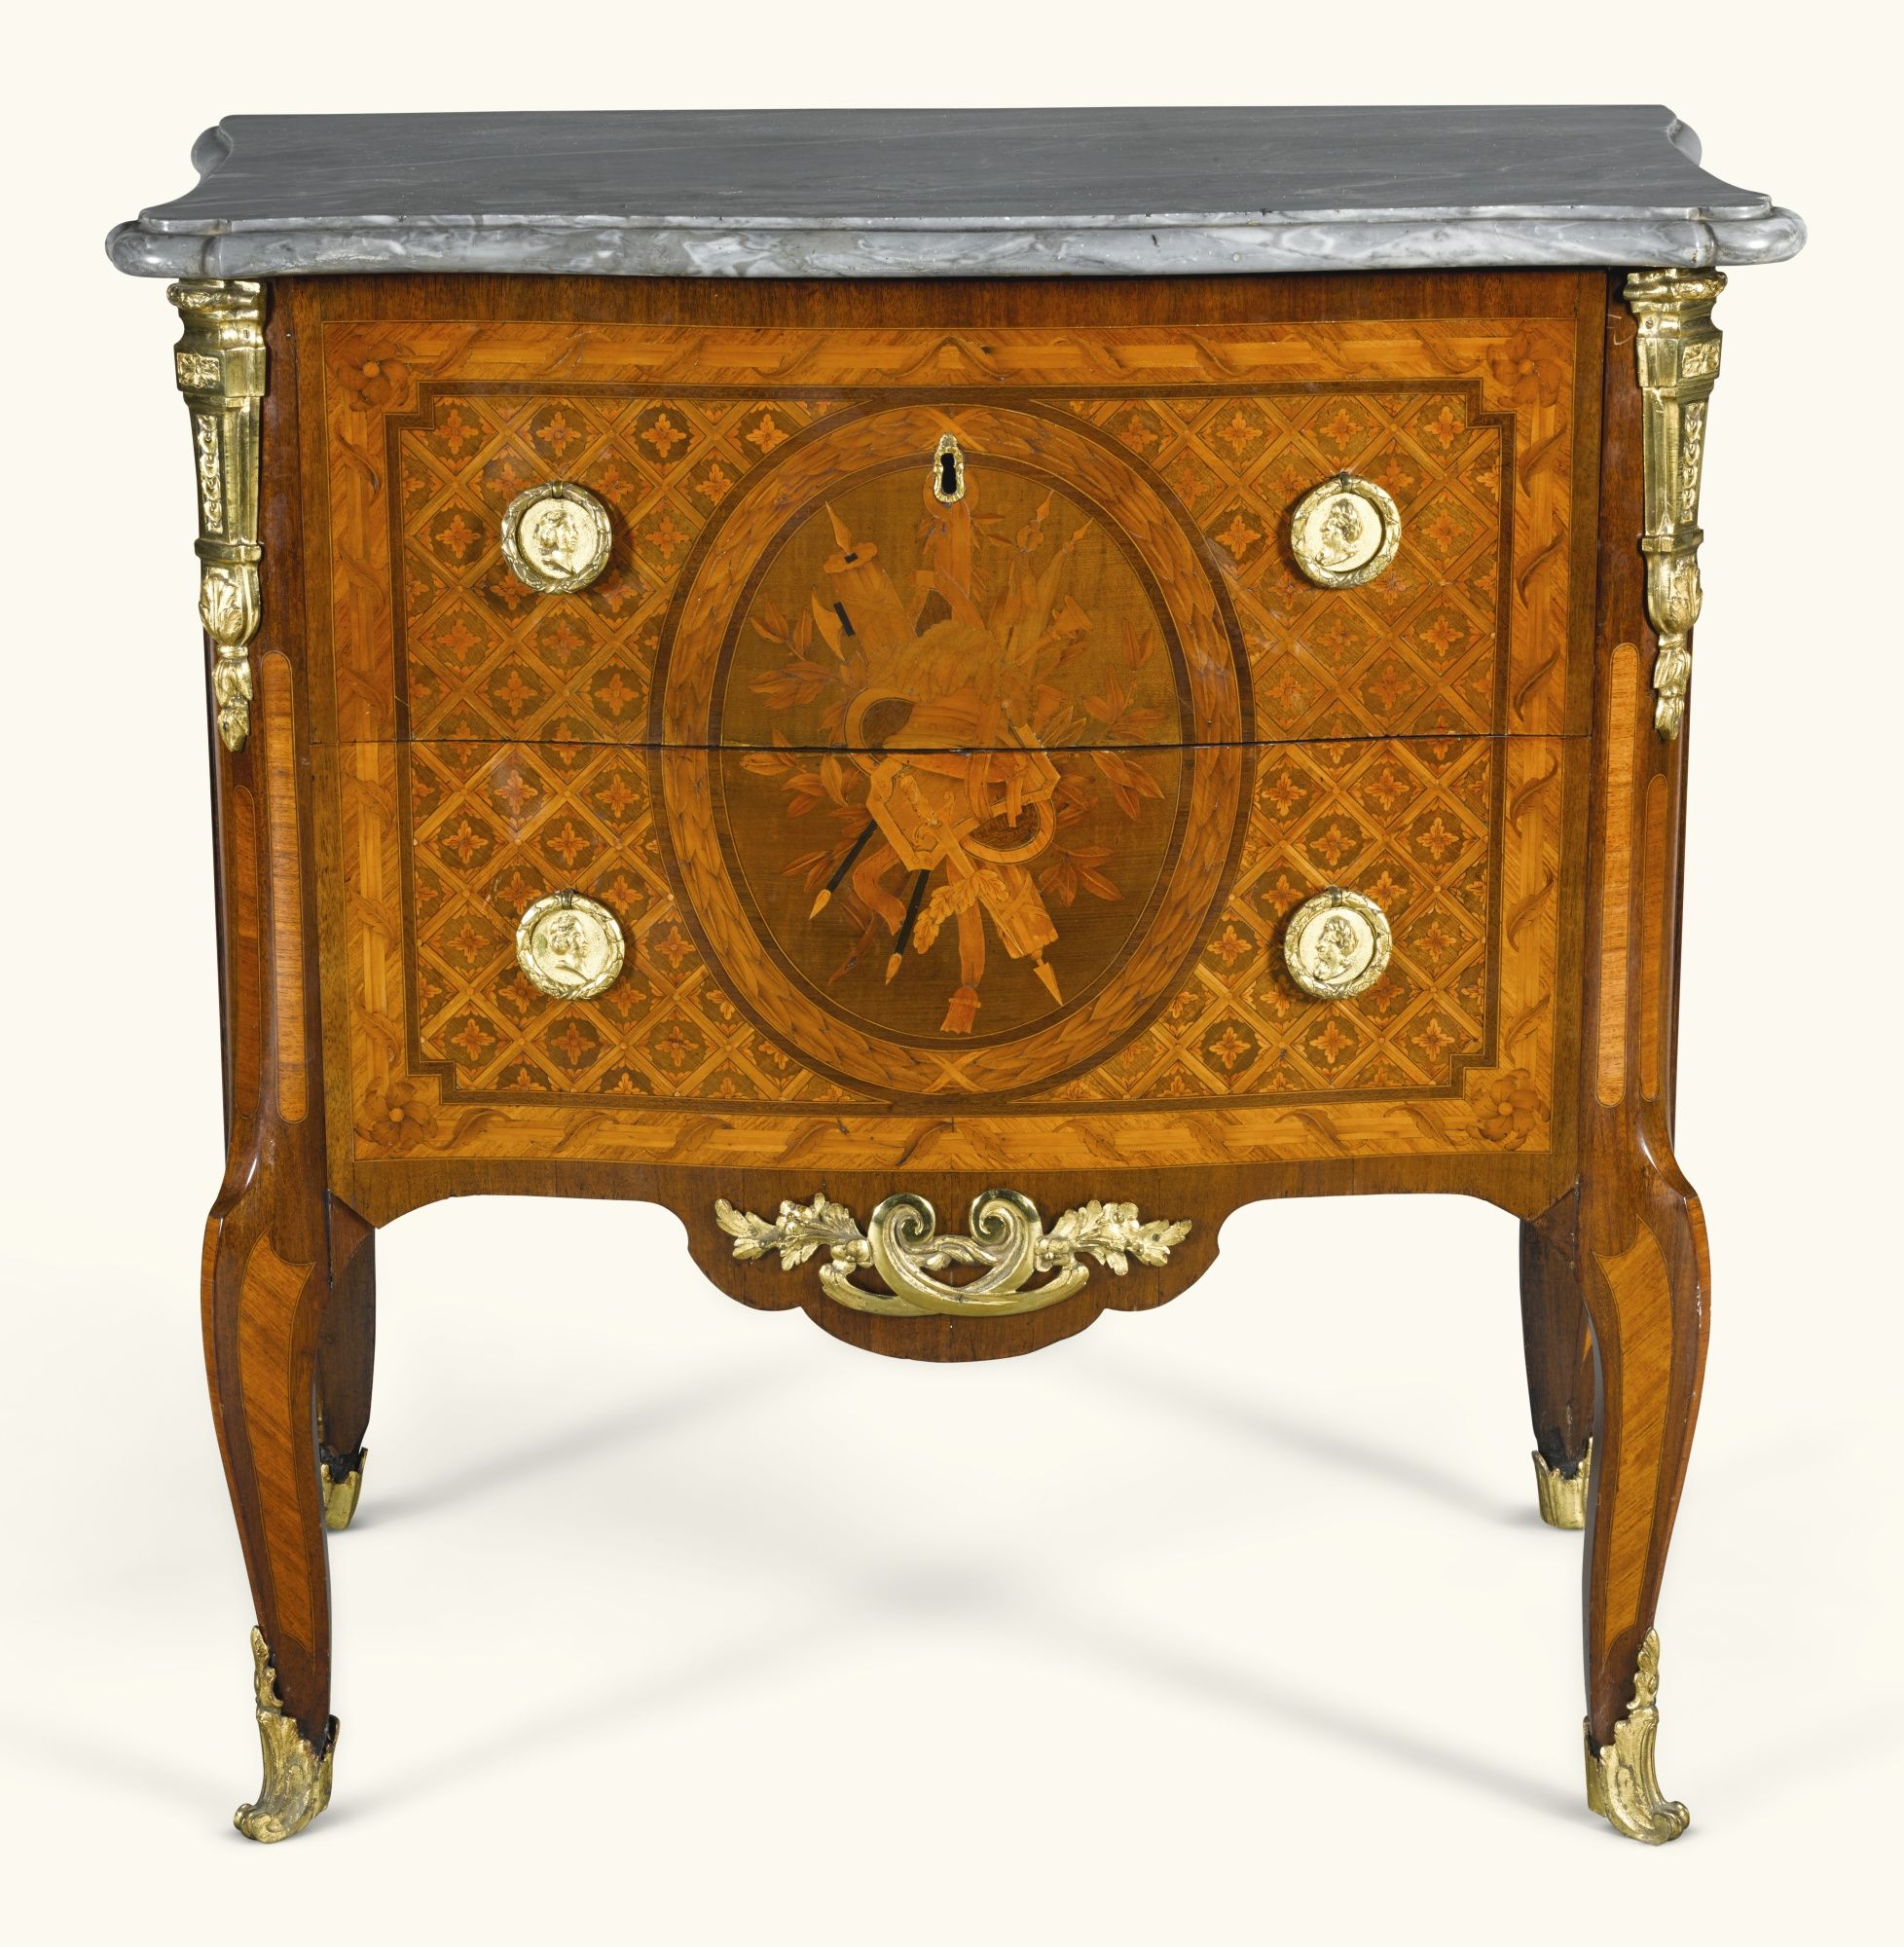 A Transitional gilt-bronze mounted tulipwood and fruitwood marquetry petit-commode by Guillaume Kemp, circa 1770